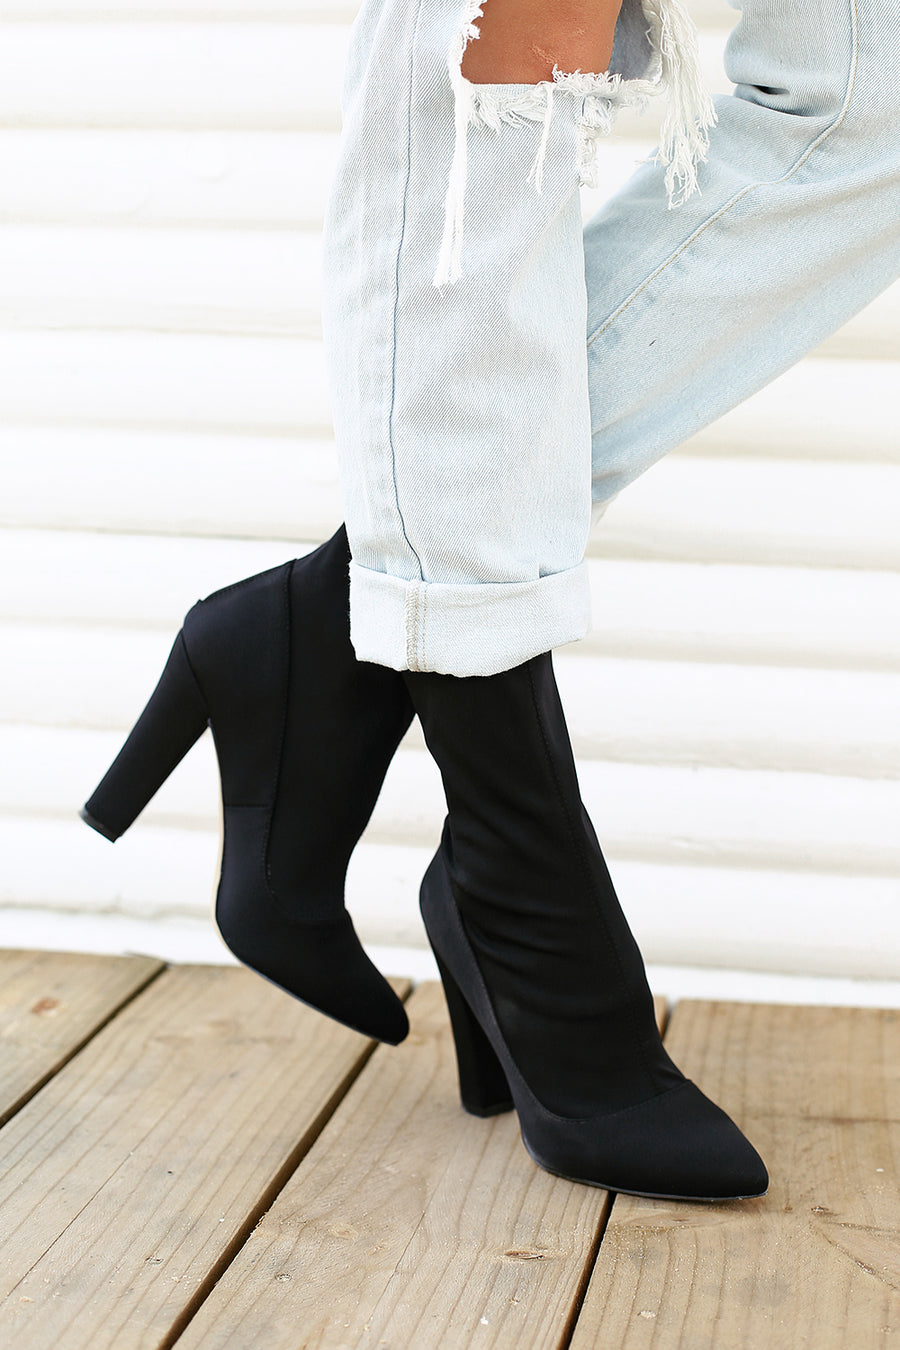 Ibby Black Neoprene Boots by Verali - HER Empire Fashion Boutique Terrigal & Online